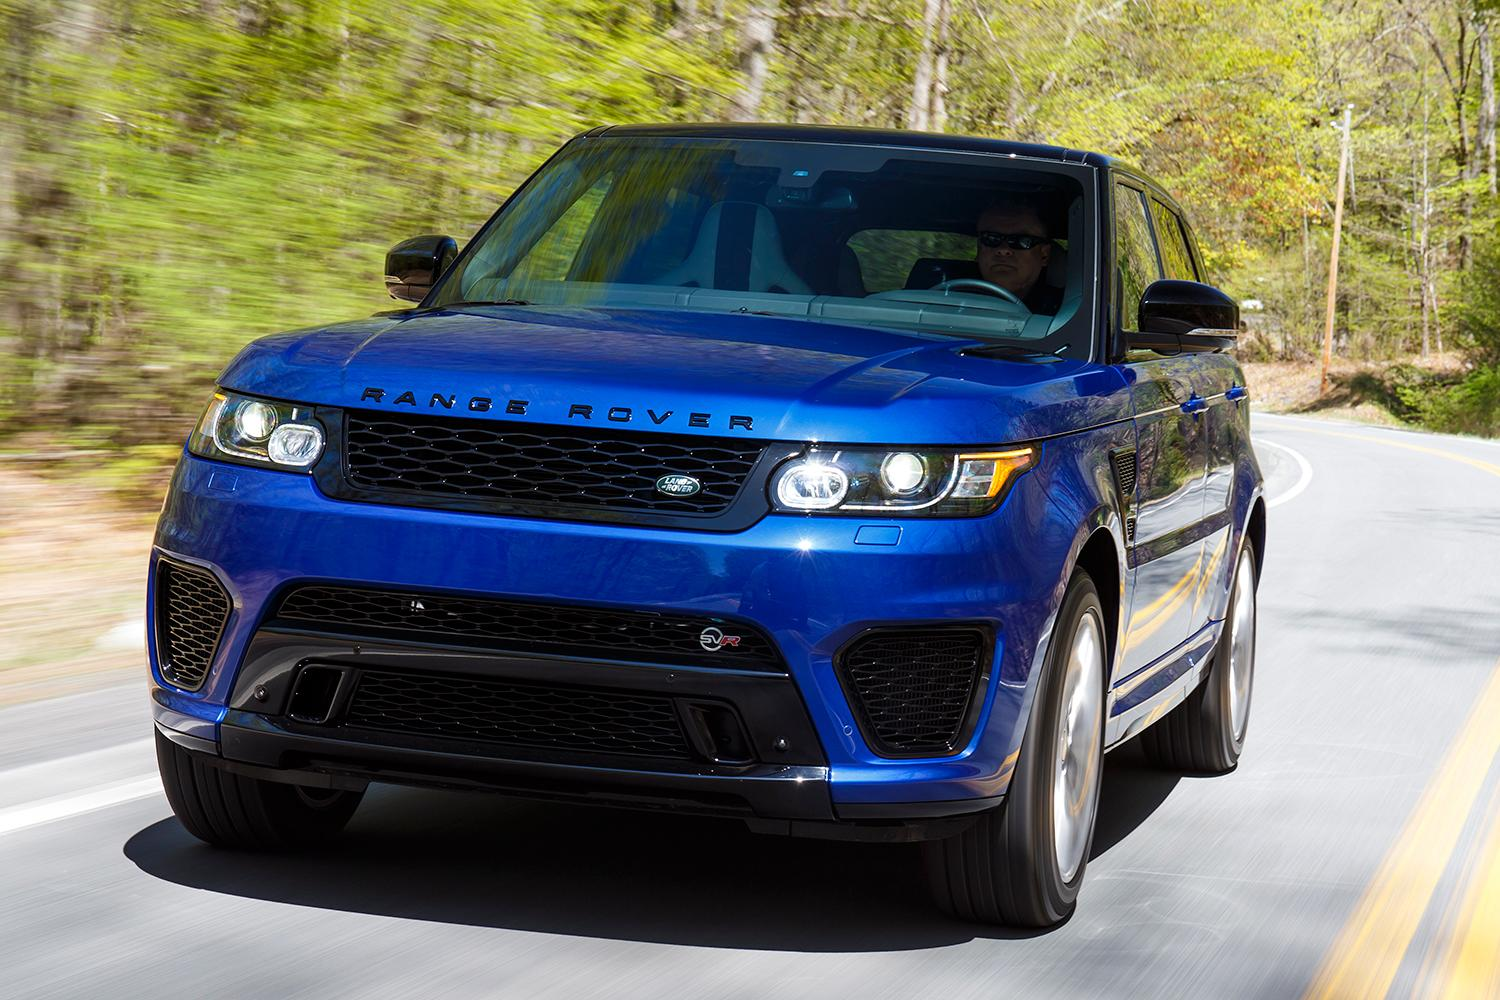 will a 575 hp v8 help the land rover range rover sport. Black Bedroom Furniture Sets. Home Design Ideas